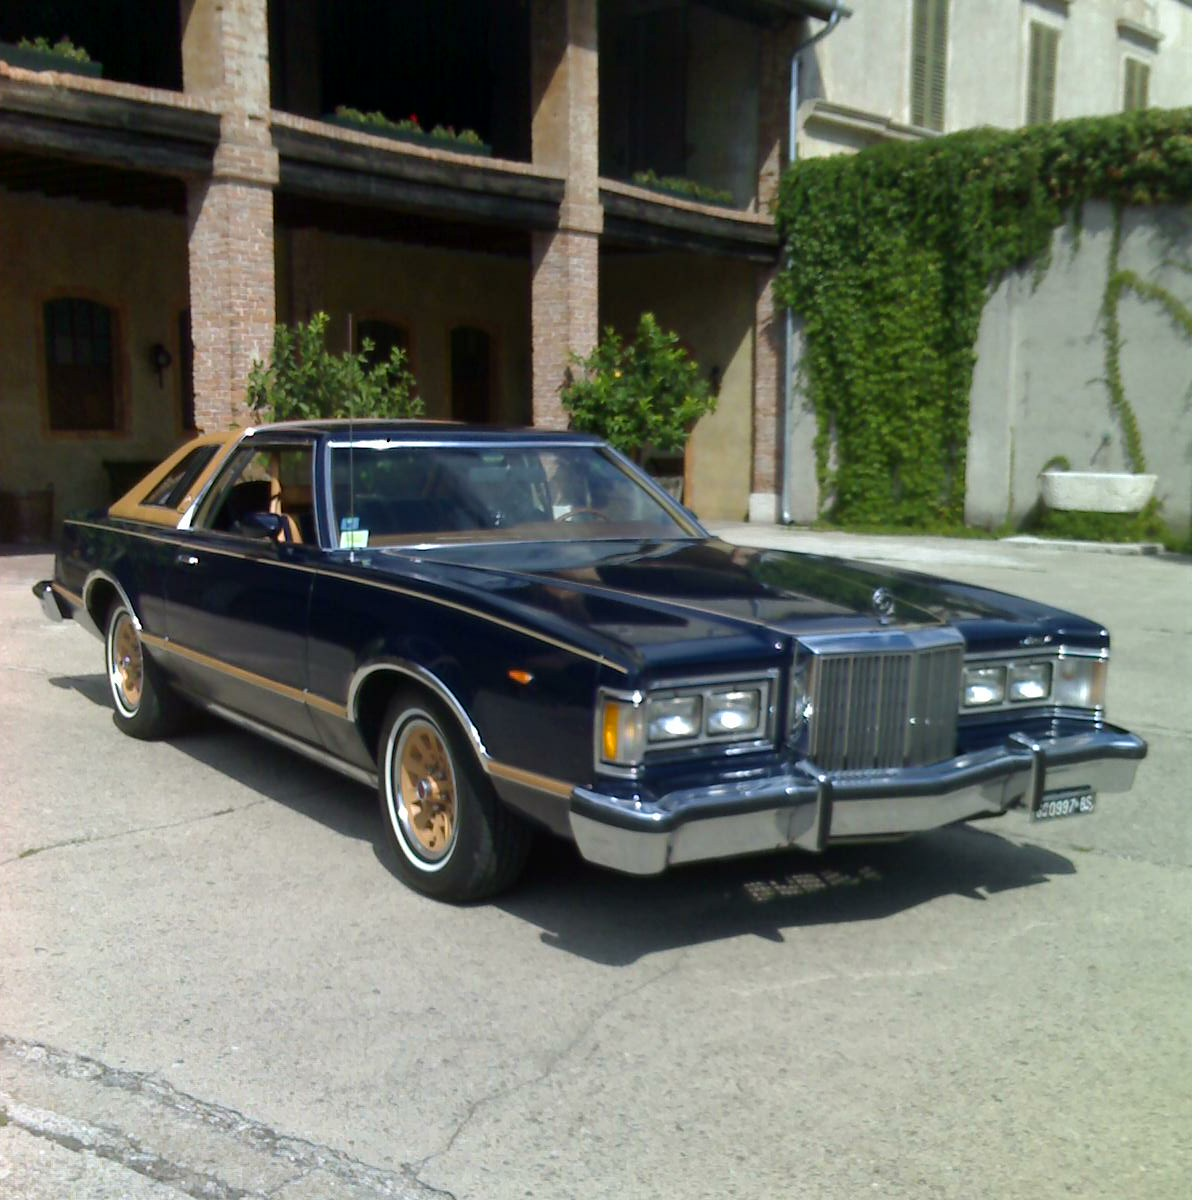 1978 Mercury Cougar Paint Colors Pictures to Pin on Pinterest